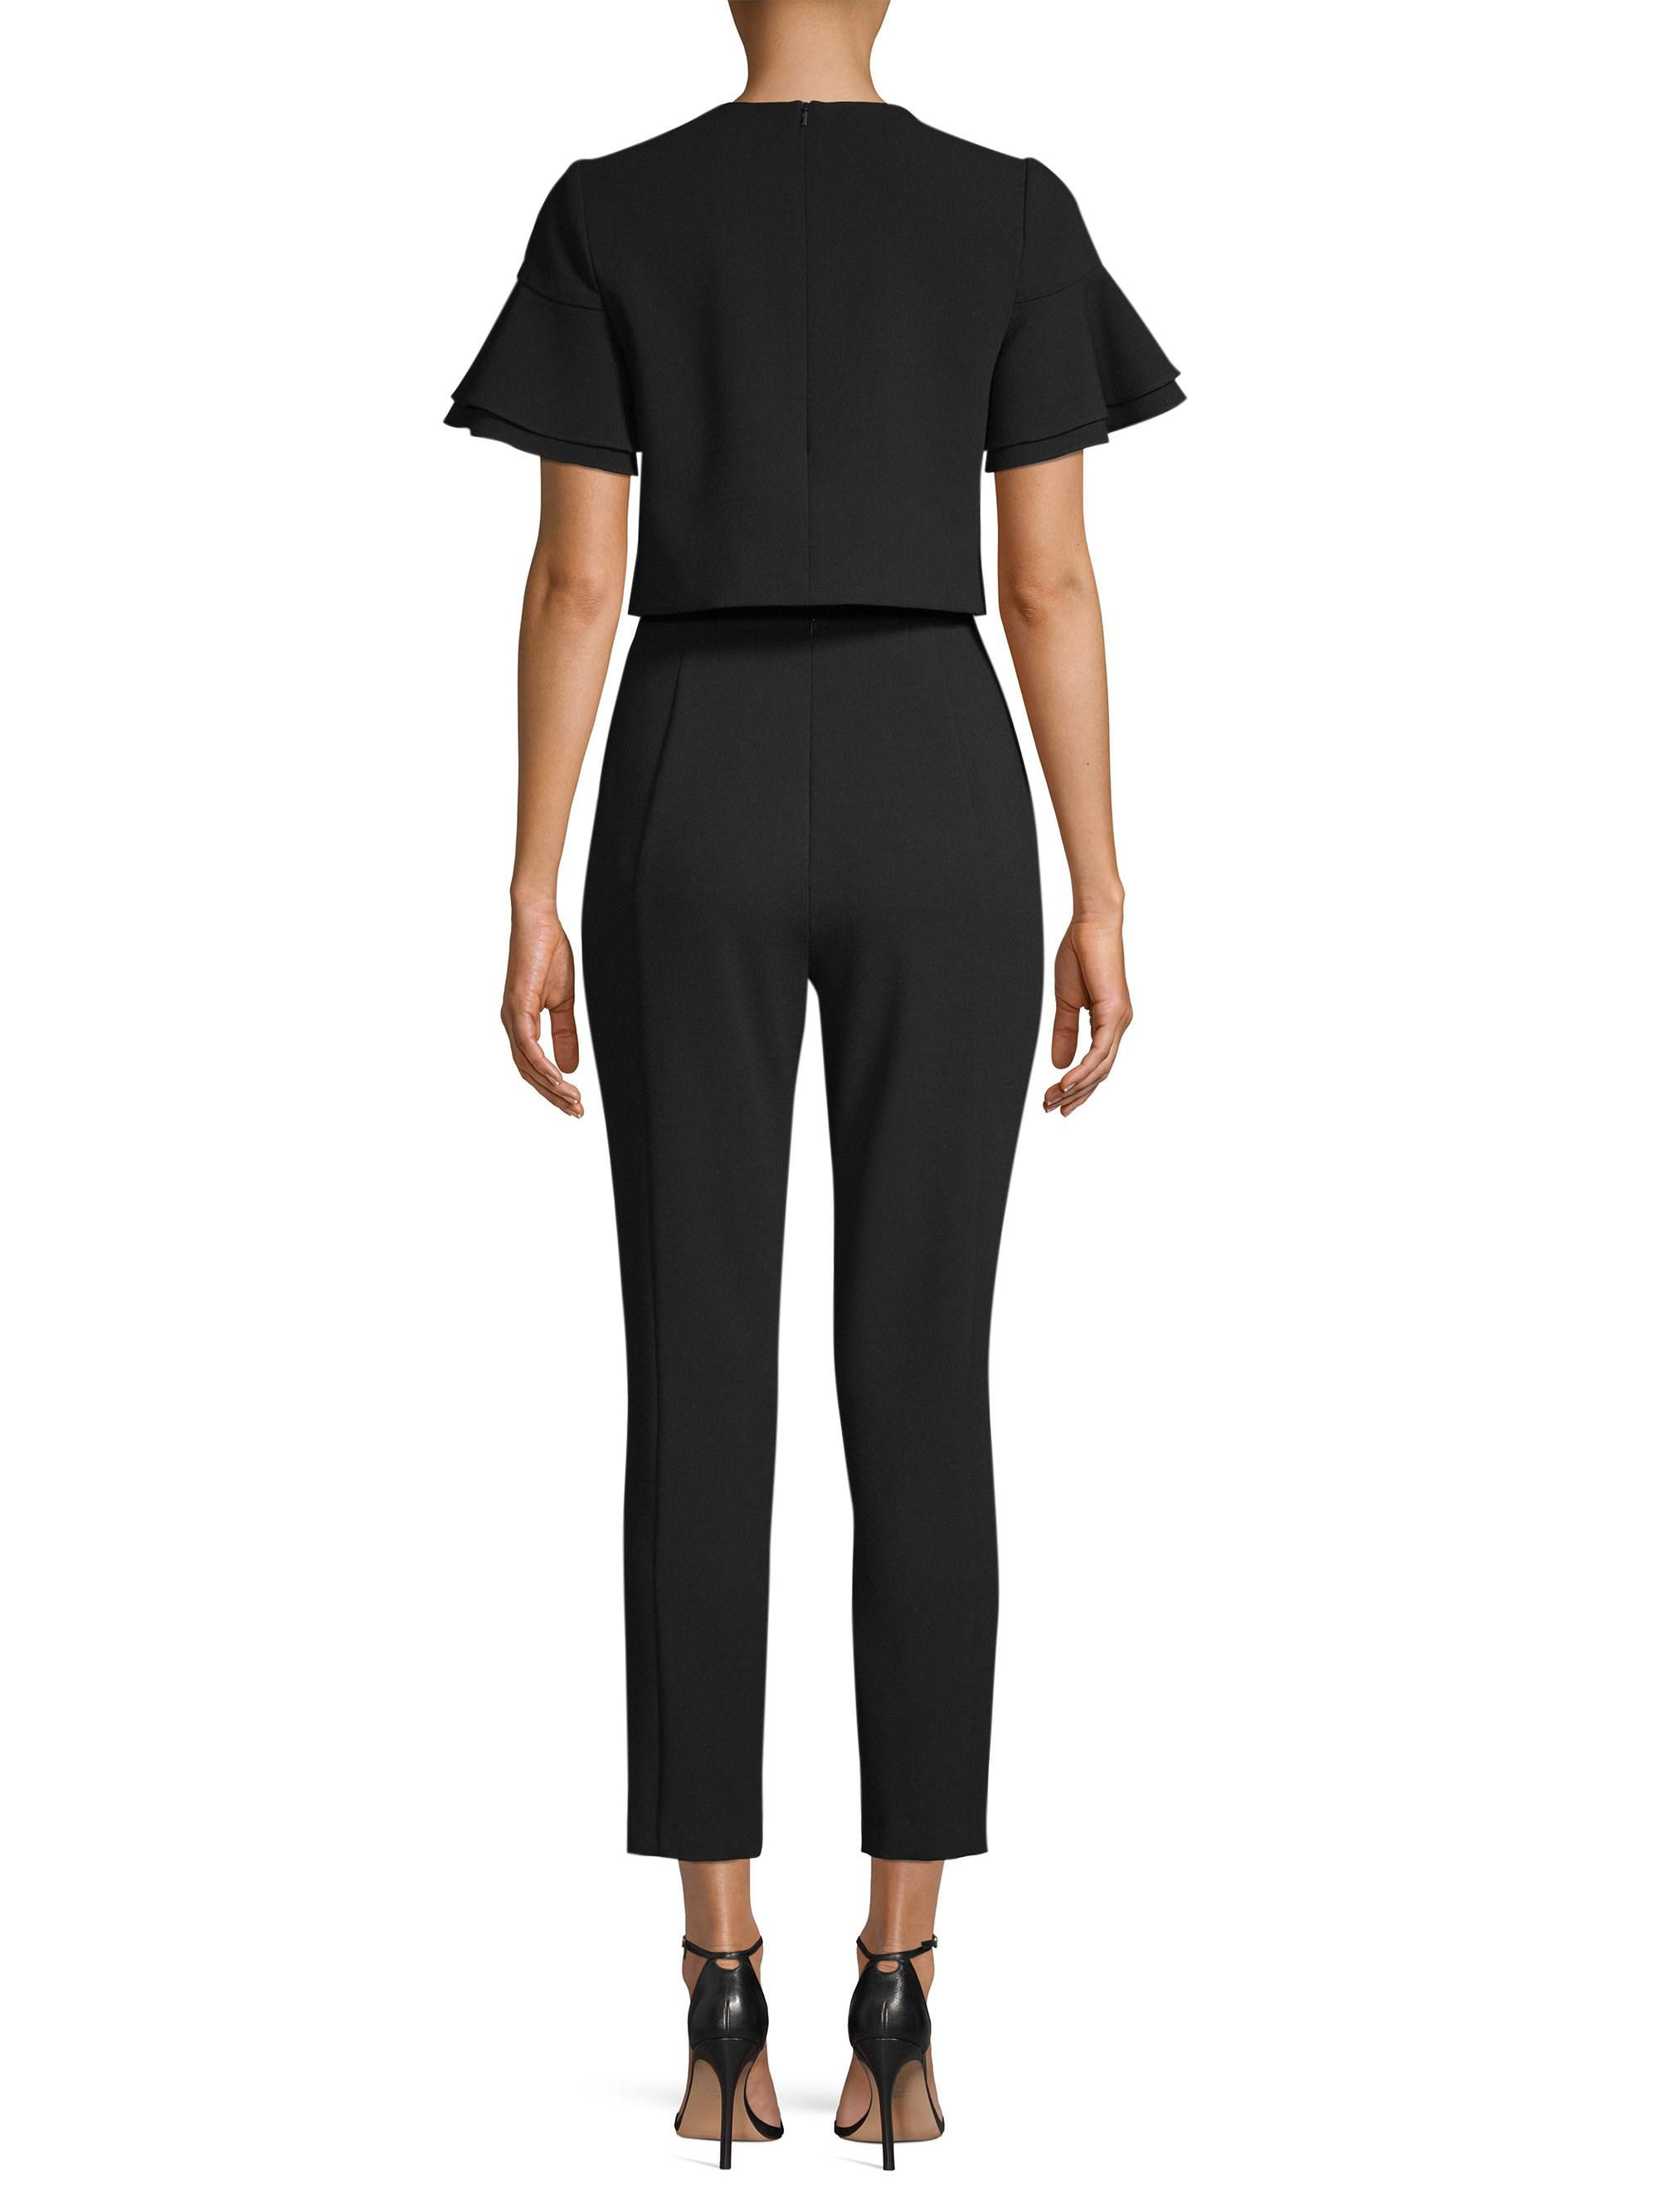 0fd63c380b5 Lyst - Black Halo Syon Two-piece Jumpsuit in Black